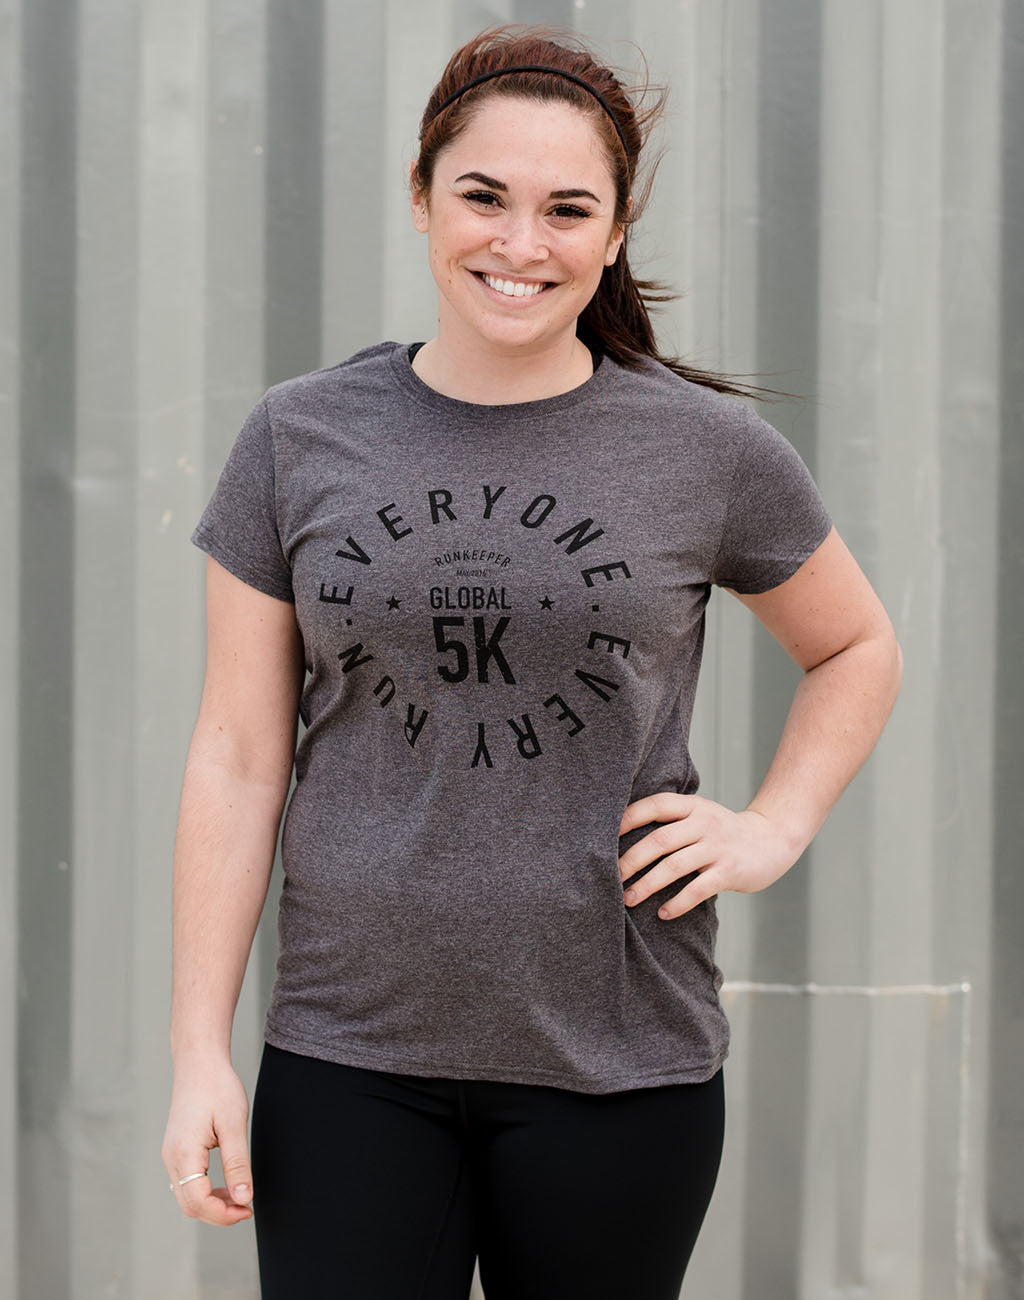 Runkeeper Global 5K - Women's '5K Badge' Cotton Blend TeeGrey_master_image